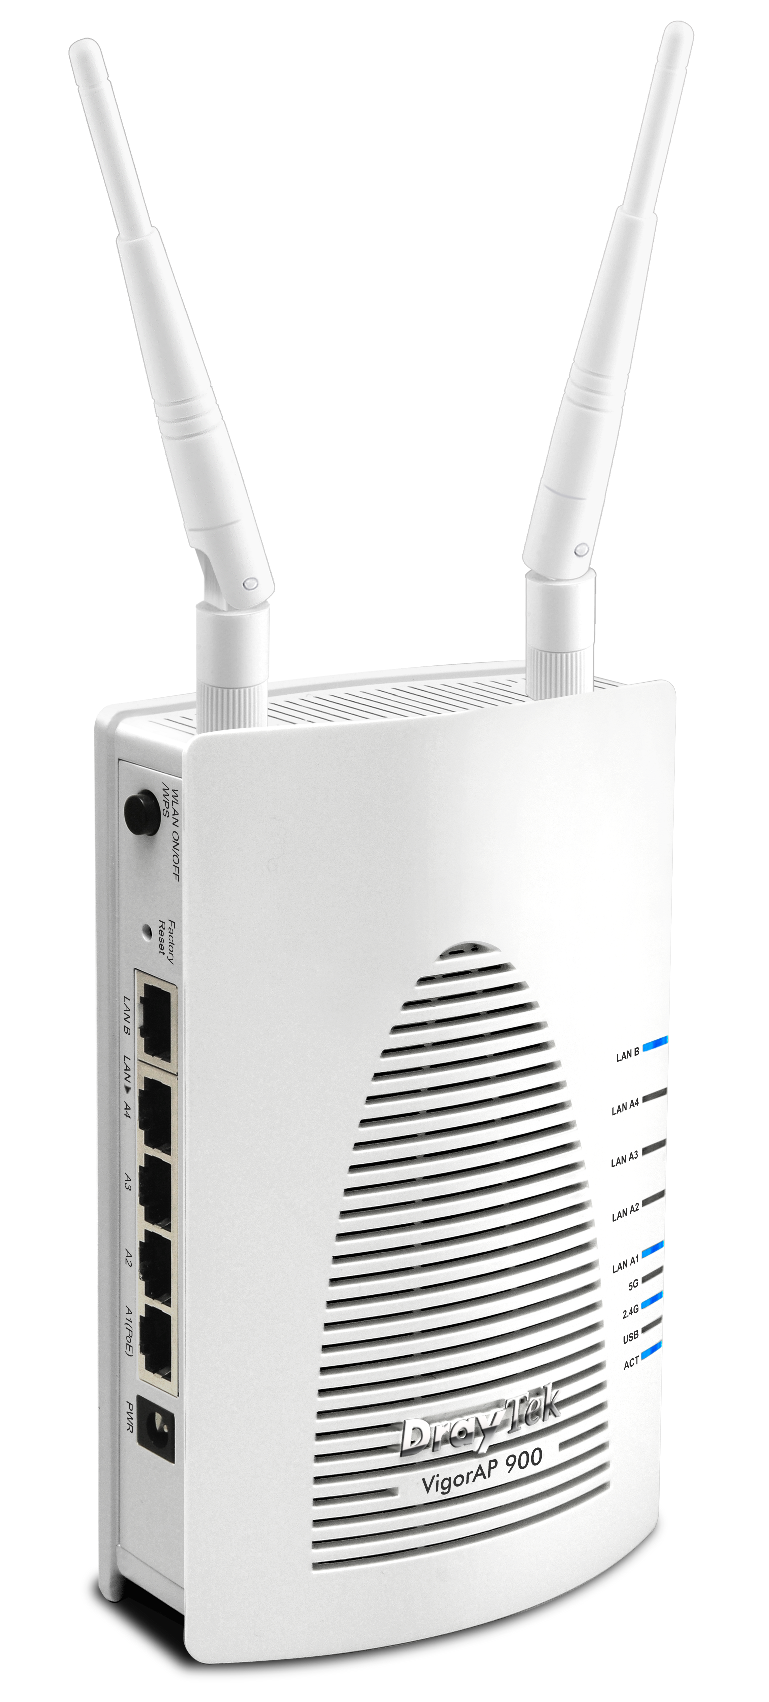 VigorAP900, 5ghz, wireless band dual, draytek access point